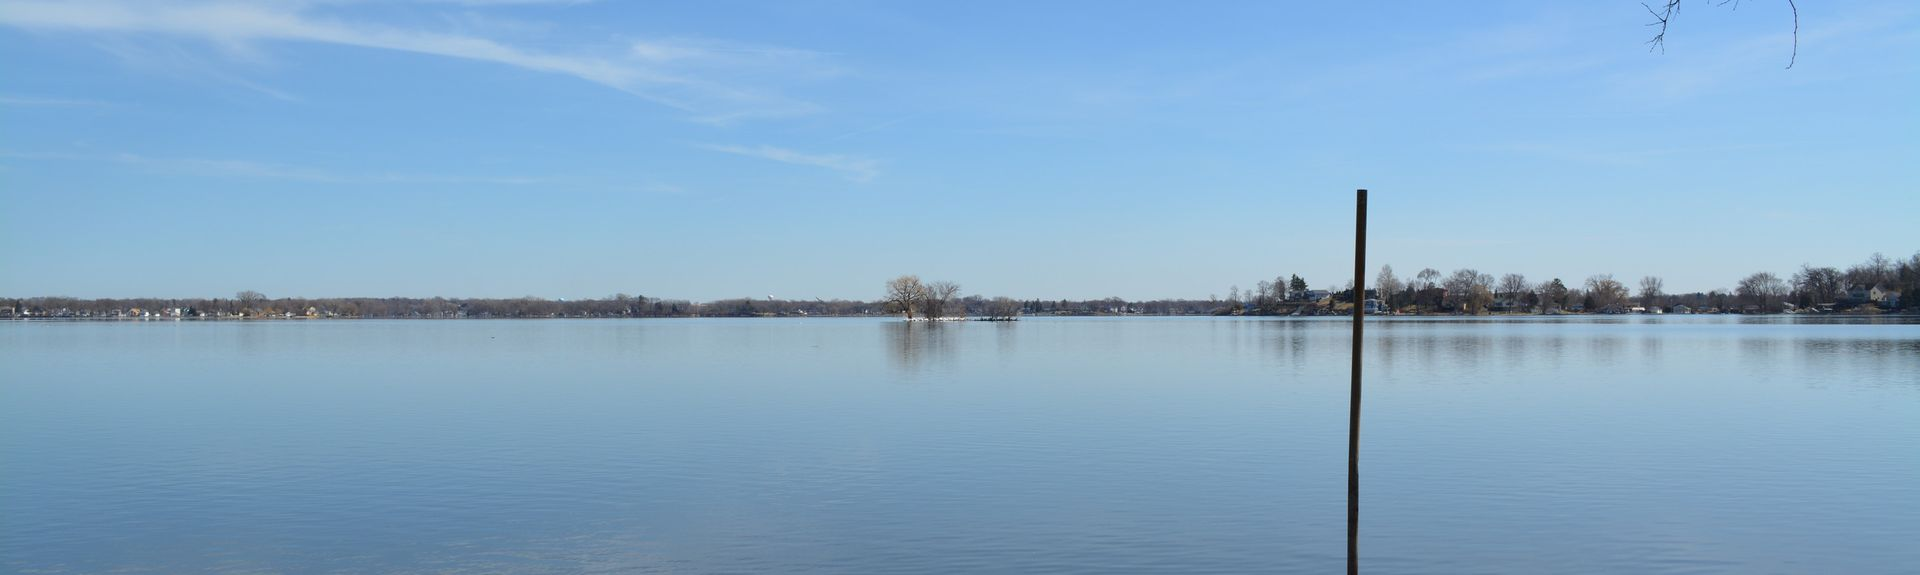 Crystal Lake, Illinois, Estados Unidos